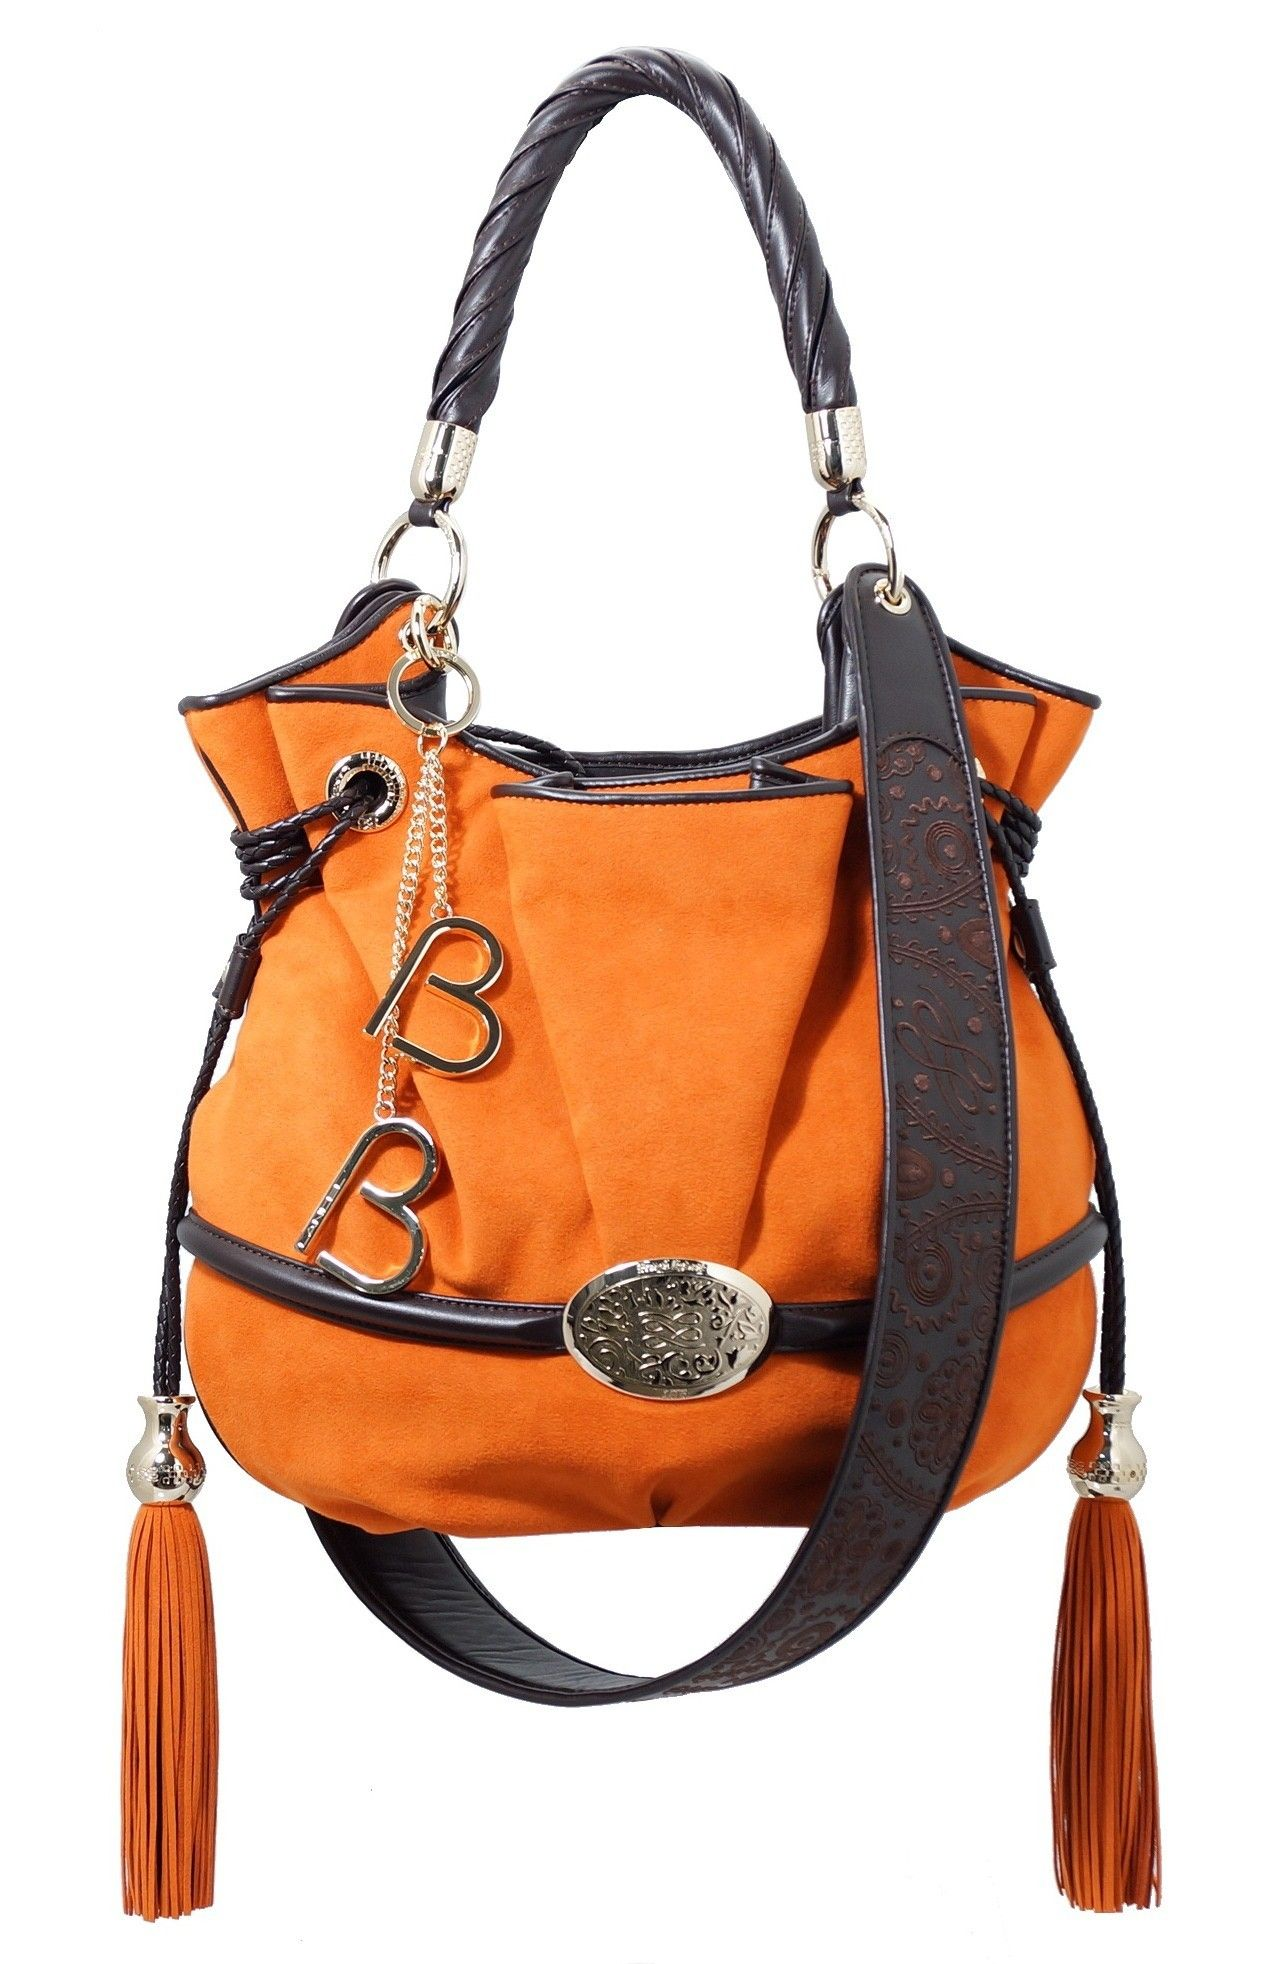 Sac A Main Bleu Lancel : Sac ? main lancel brigitte bardot cuir mat orange